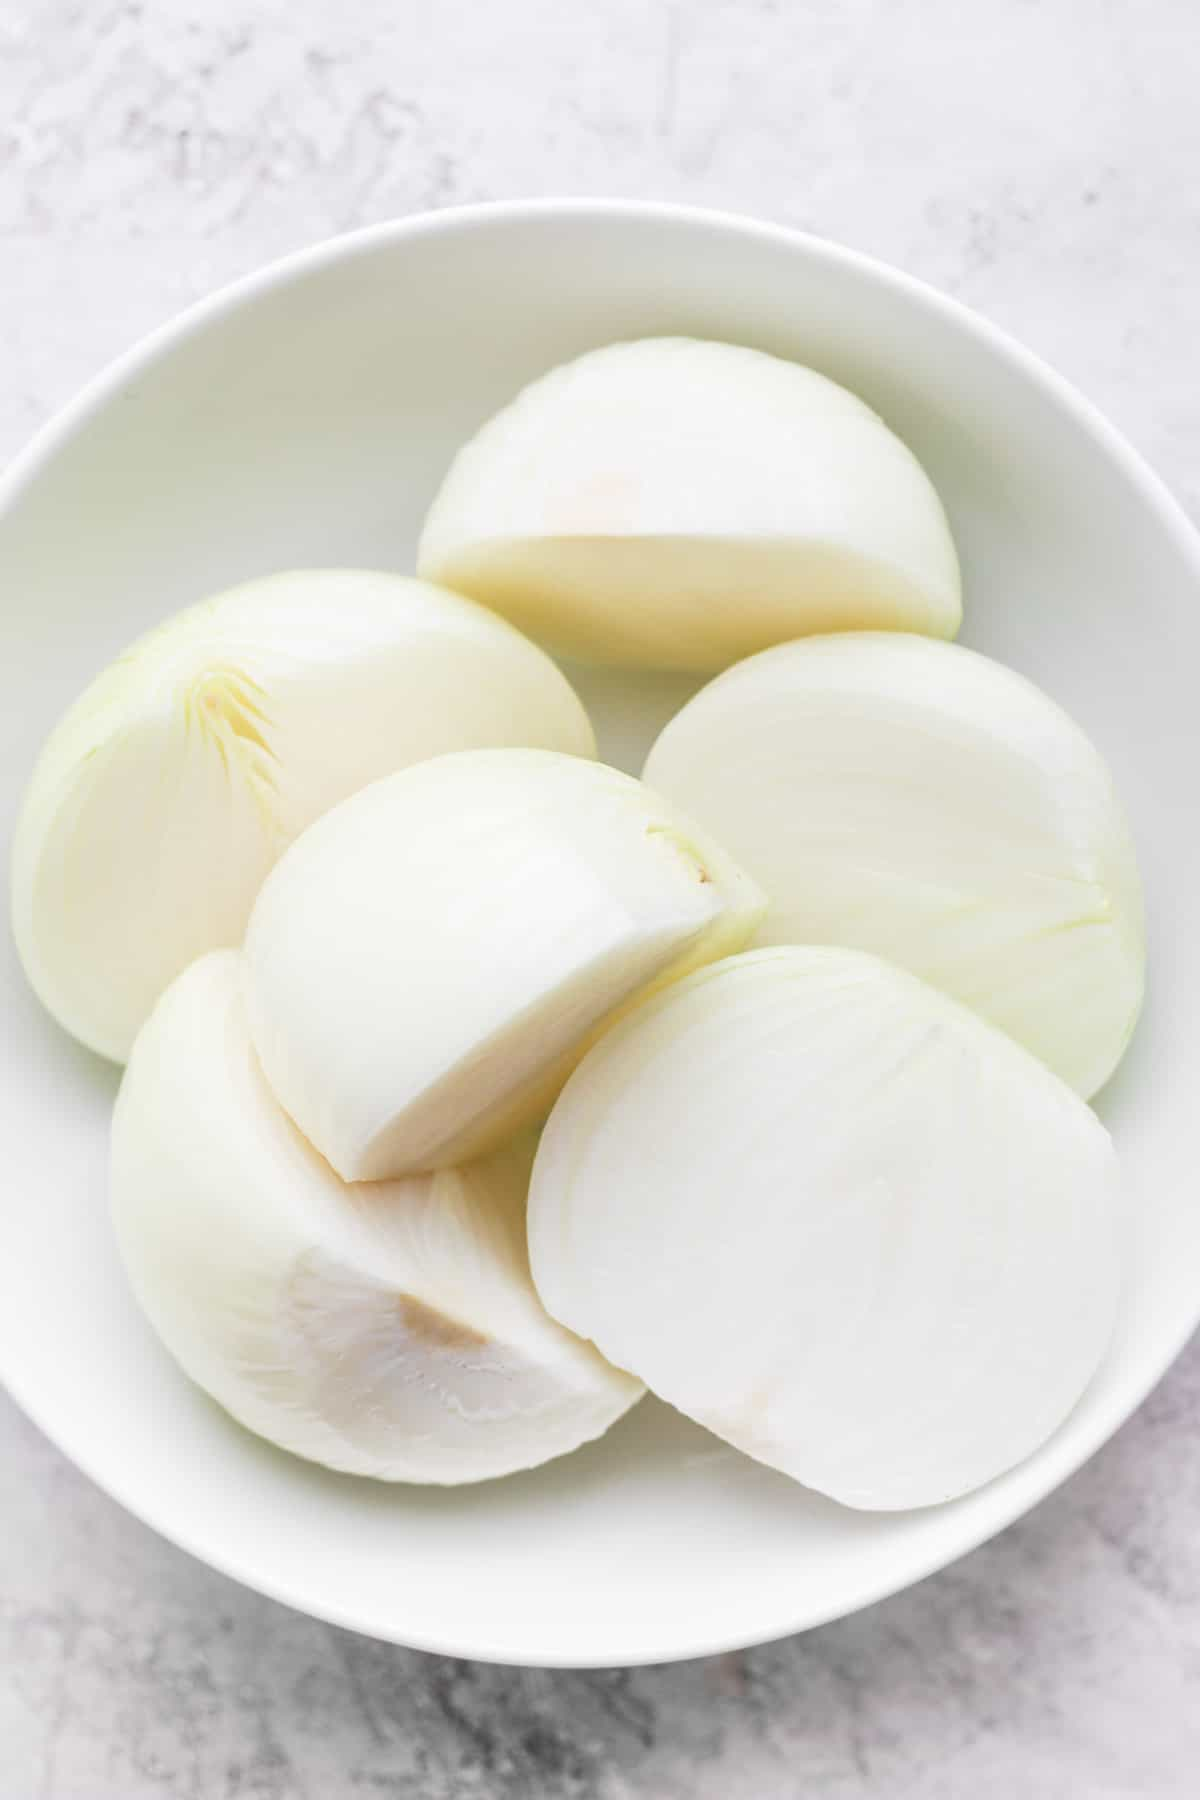 3 halves onions in a large white bowl